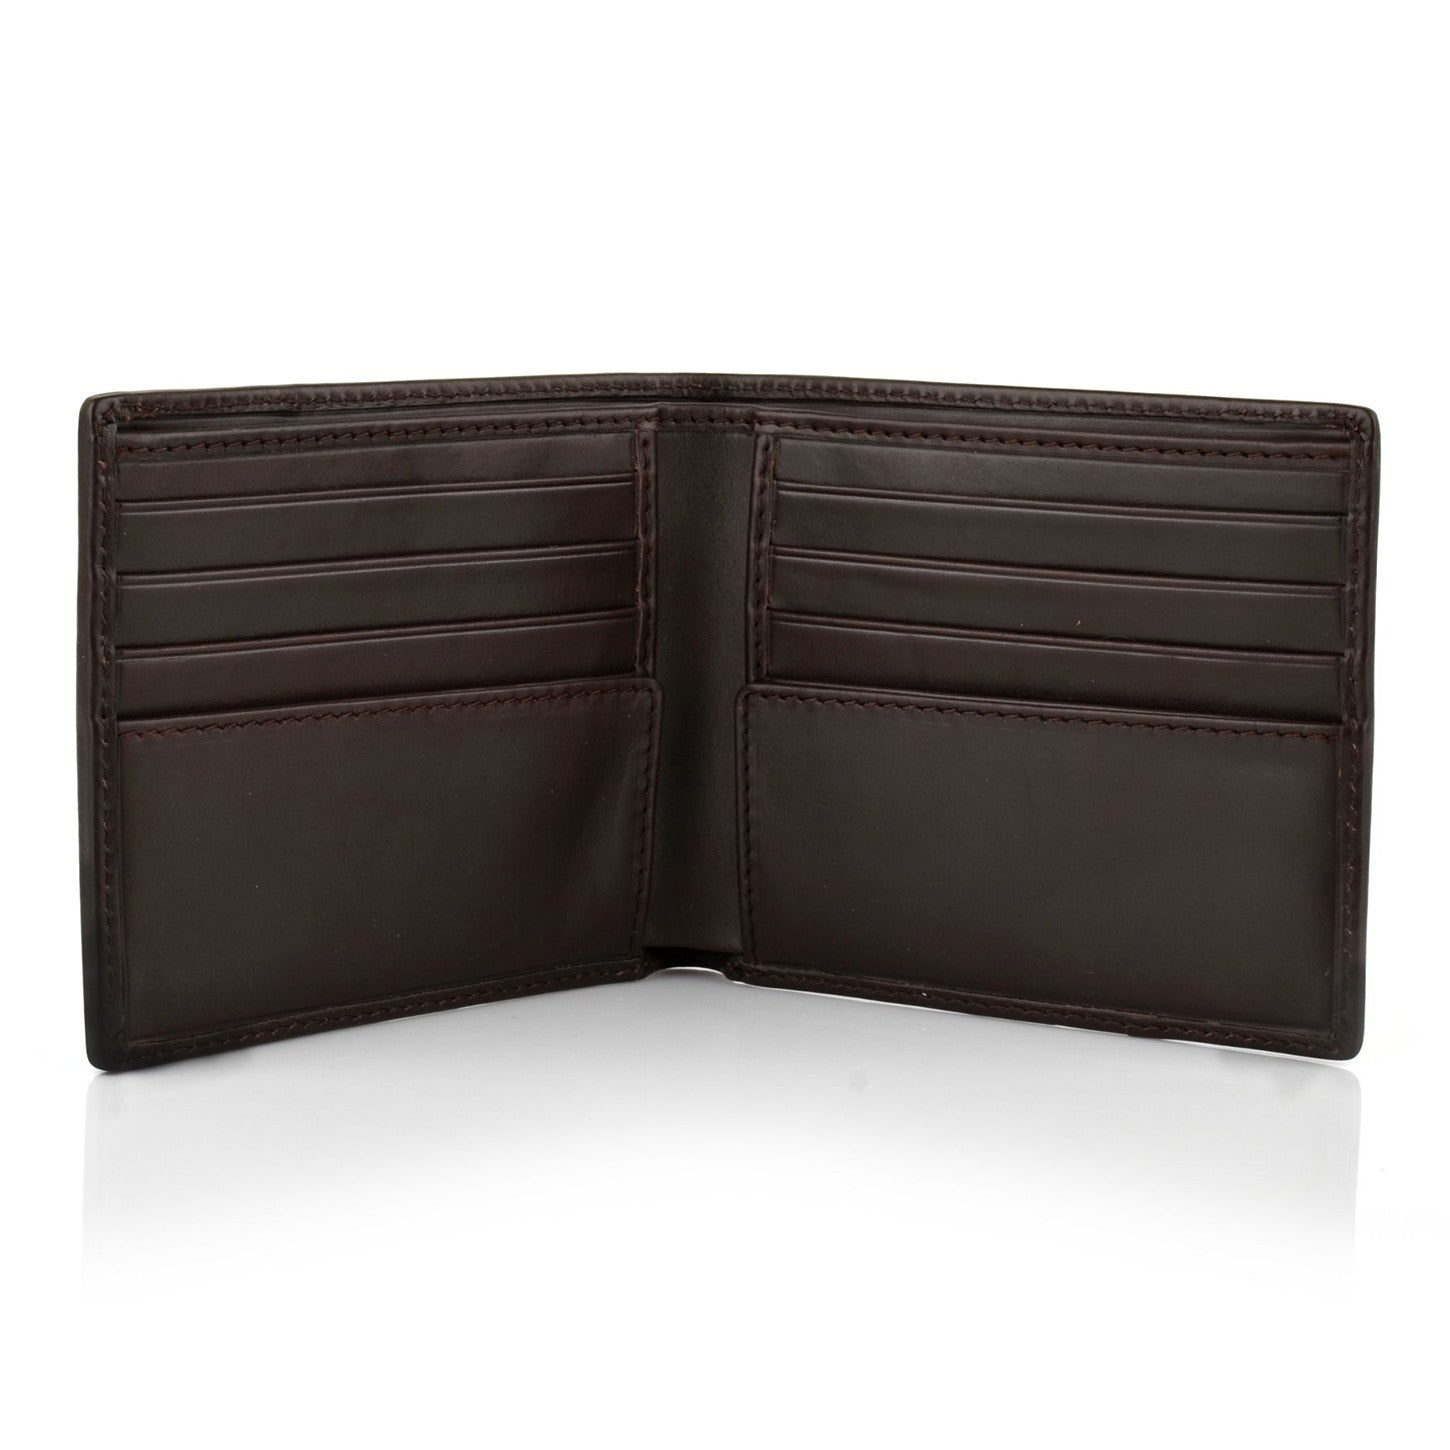 LG16006 - Collezione Memphis Men's Brown Wallet